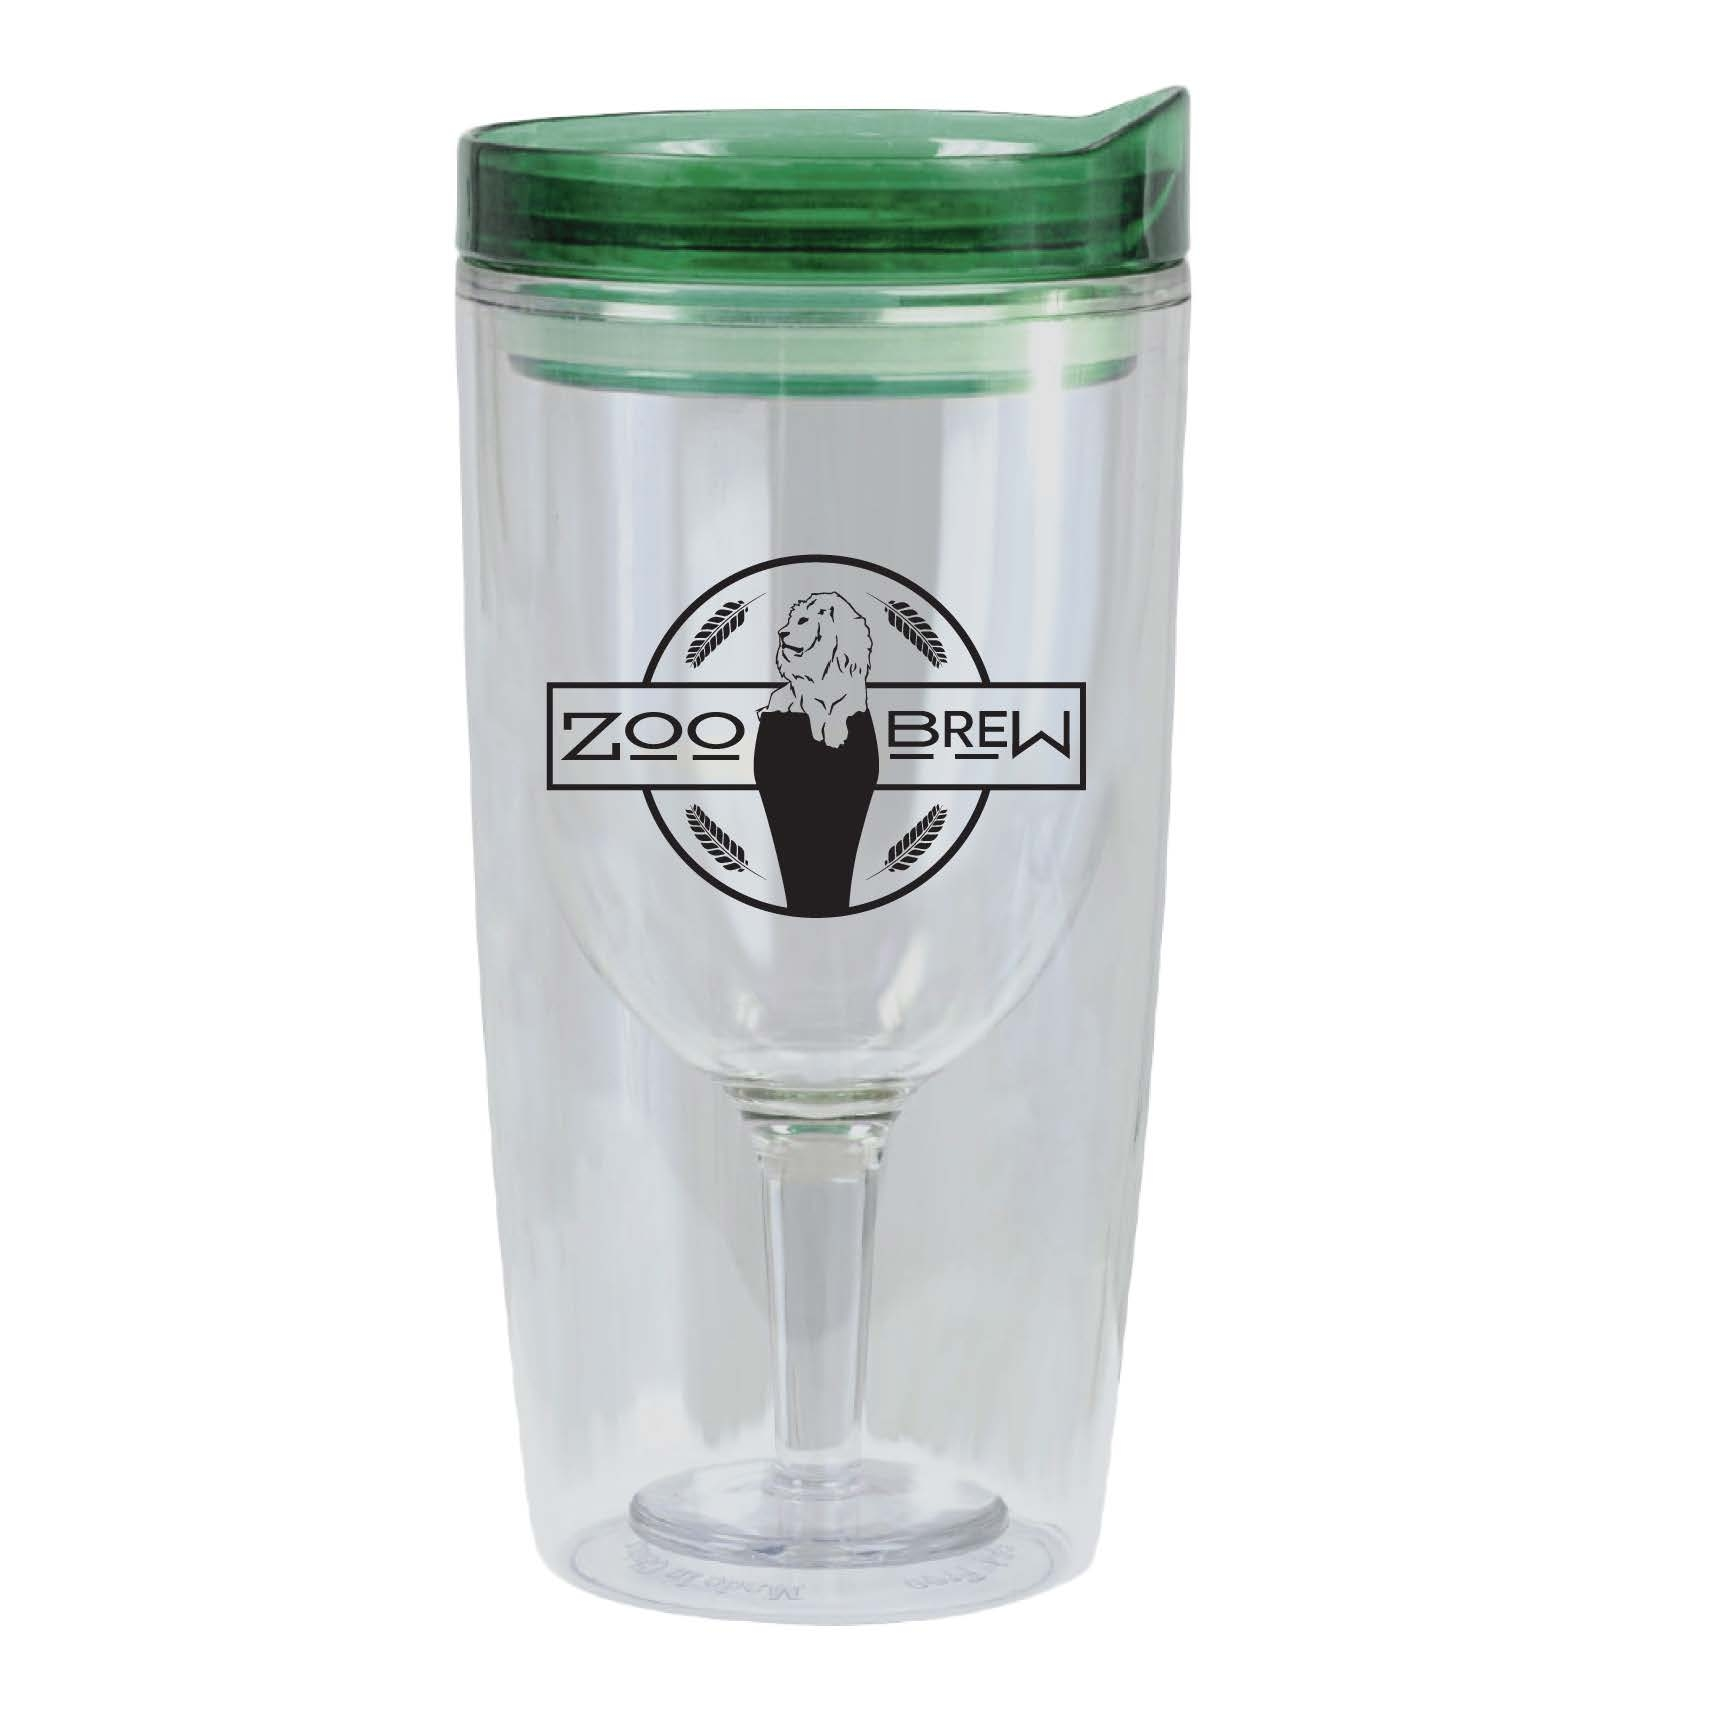 WINE TO GO ZOO BREW TUMBLER GREEN